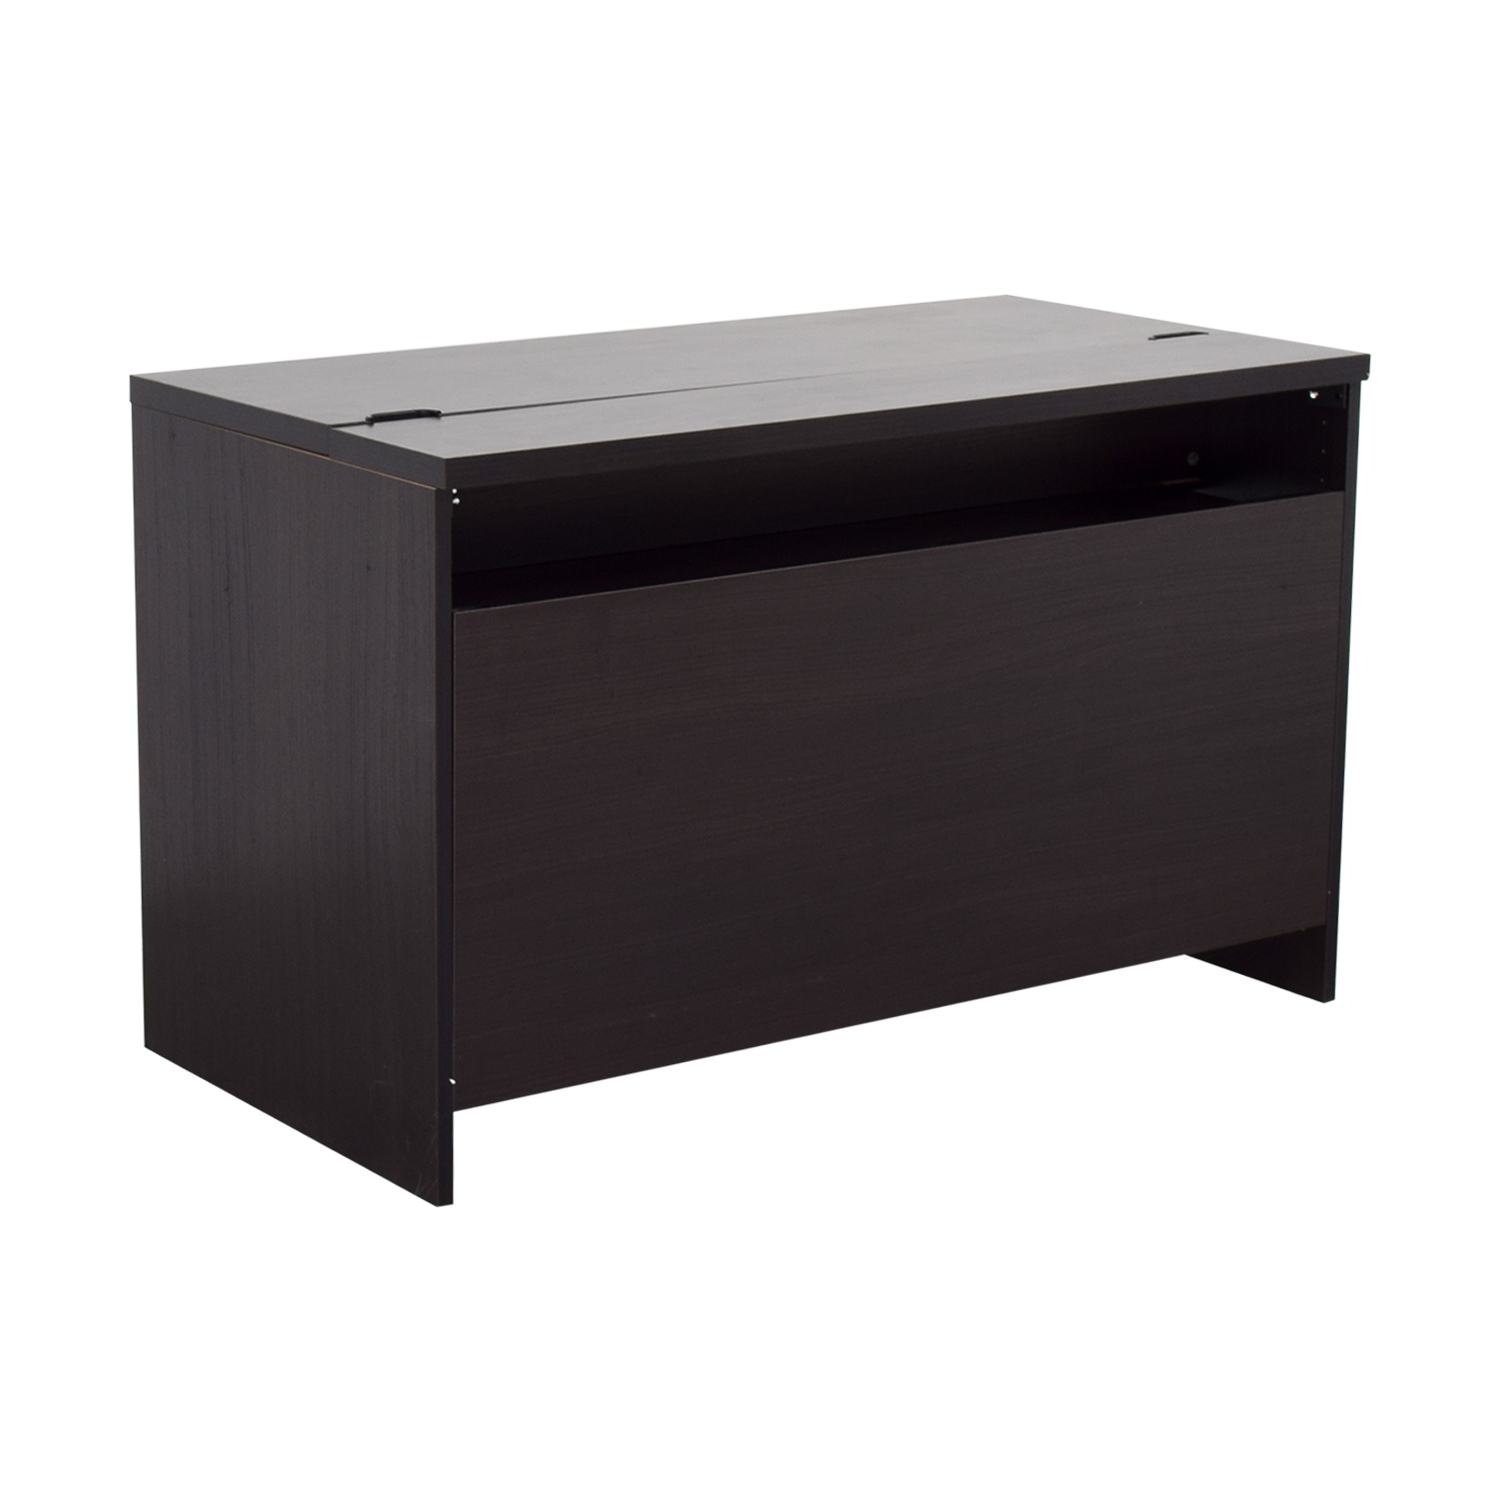 90 off ikea ikea black office desk tables. Black Bedroom Furniture Sets. Home Design Ideas